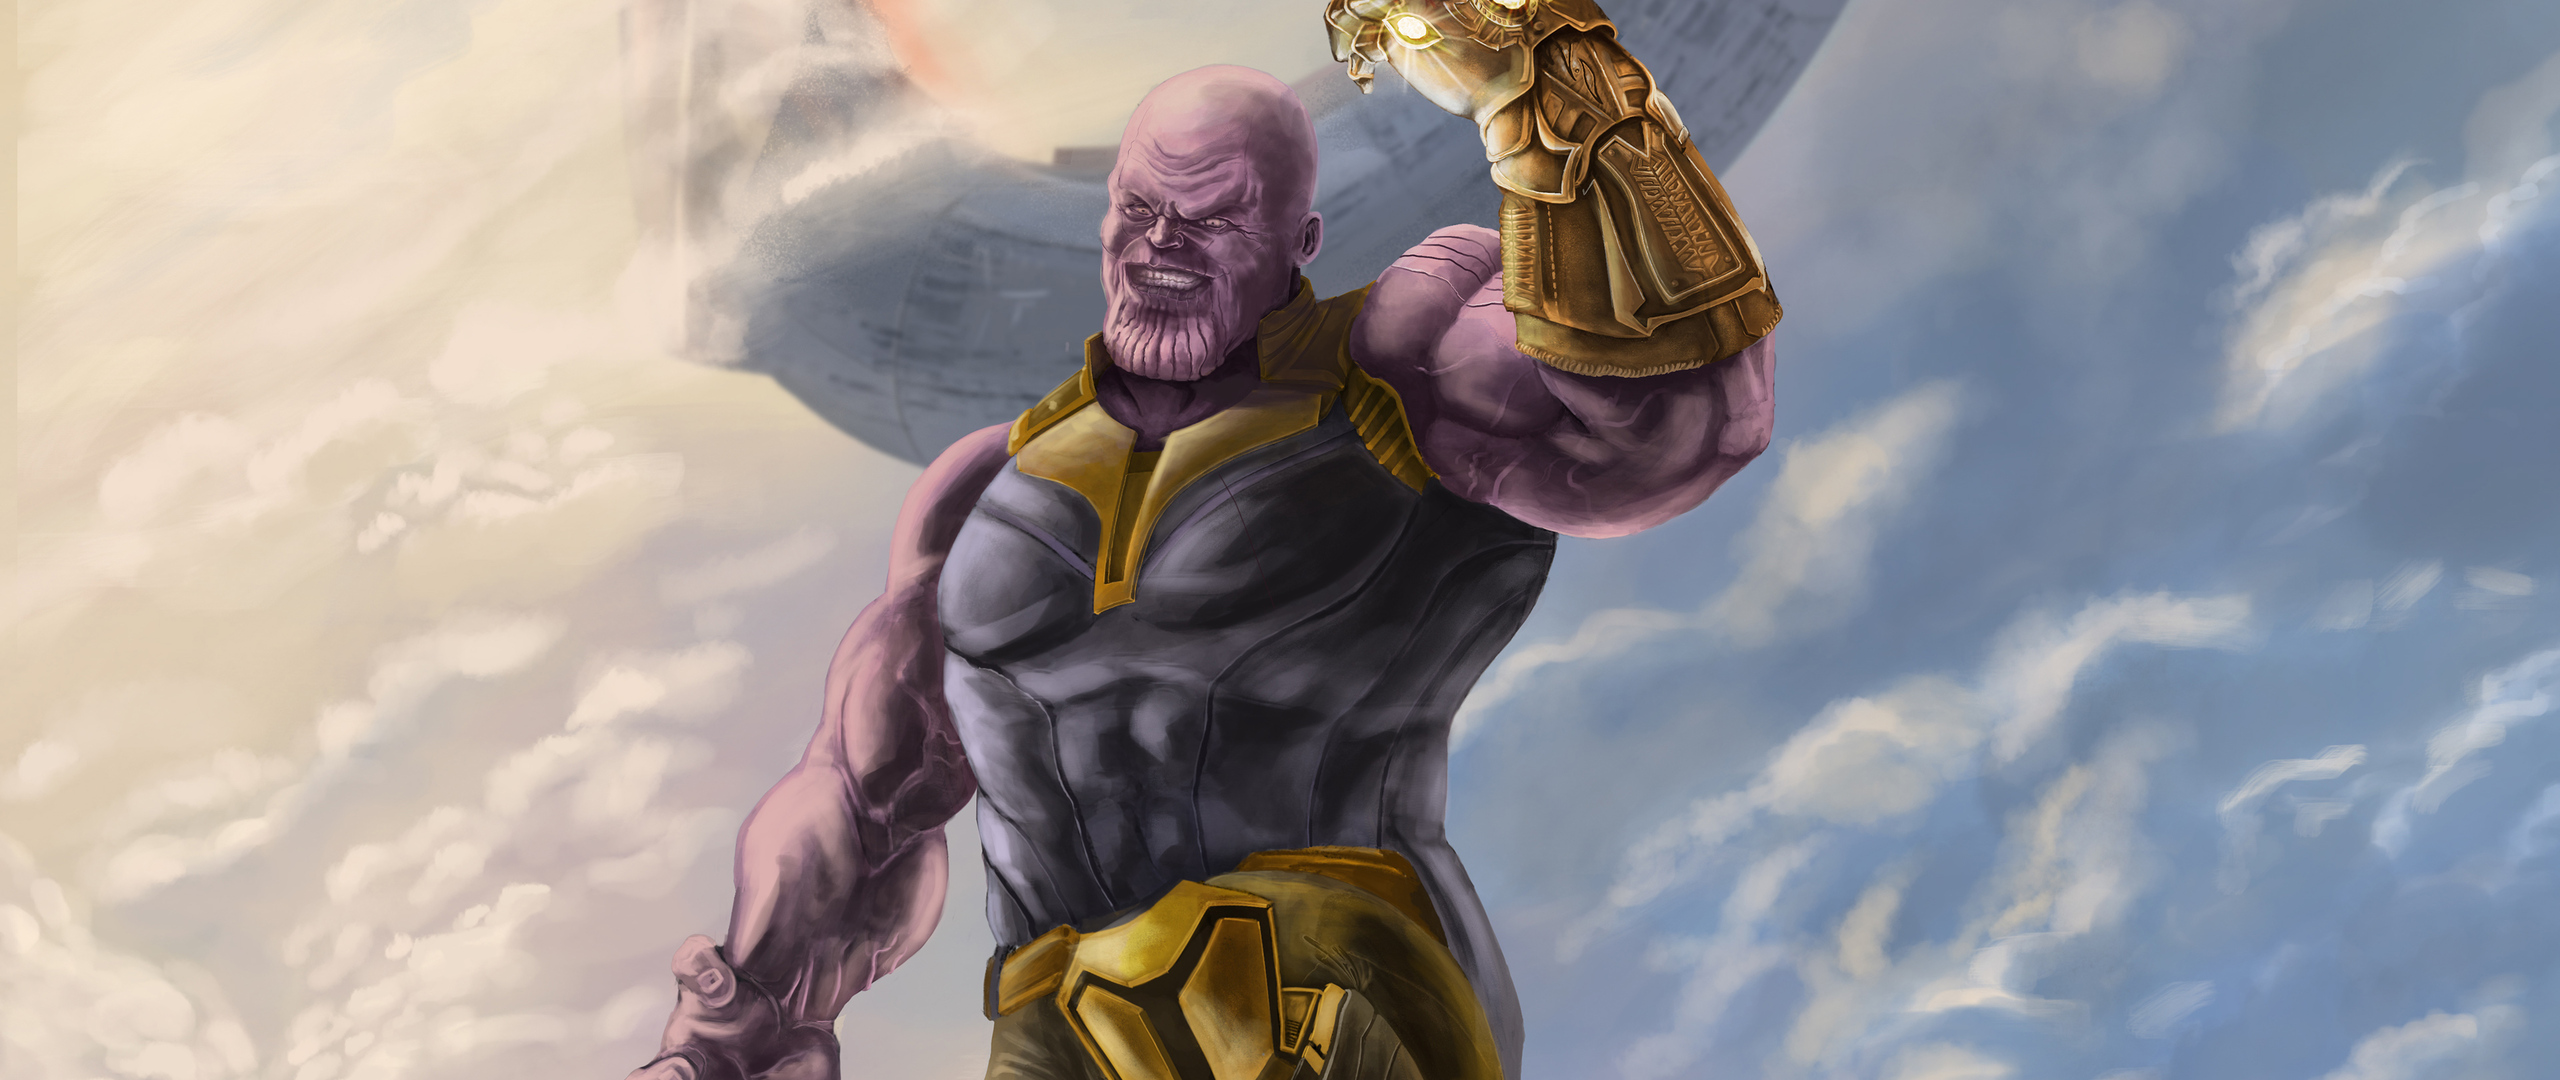 2560x1080 Thanos 4k Artwork 2019 2560x1080 Resolution Hd 4k